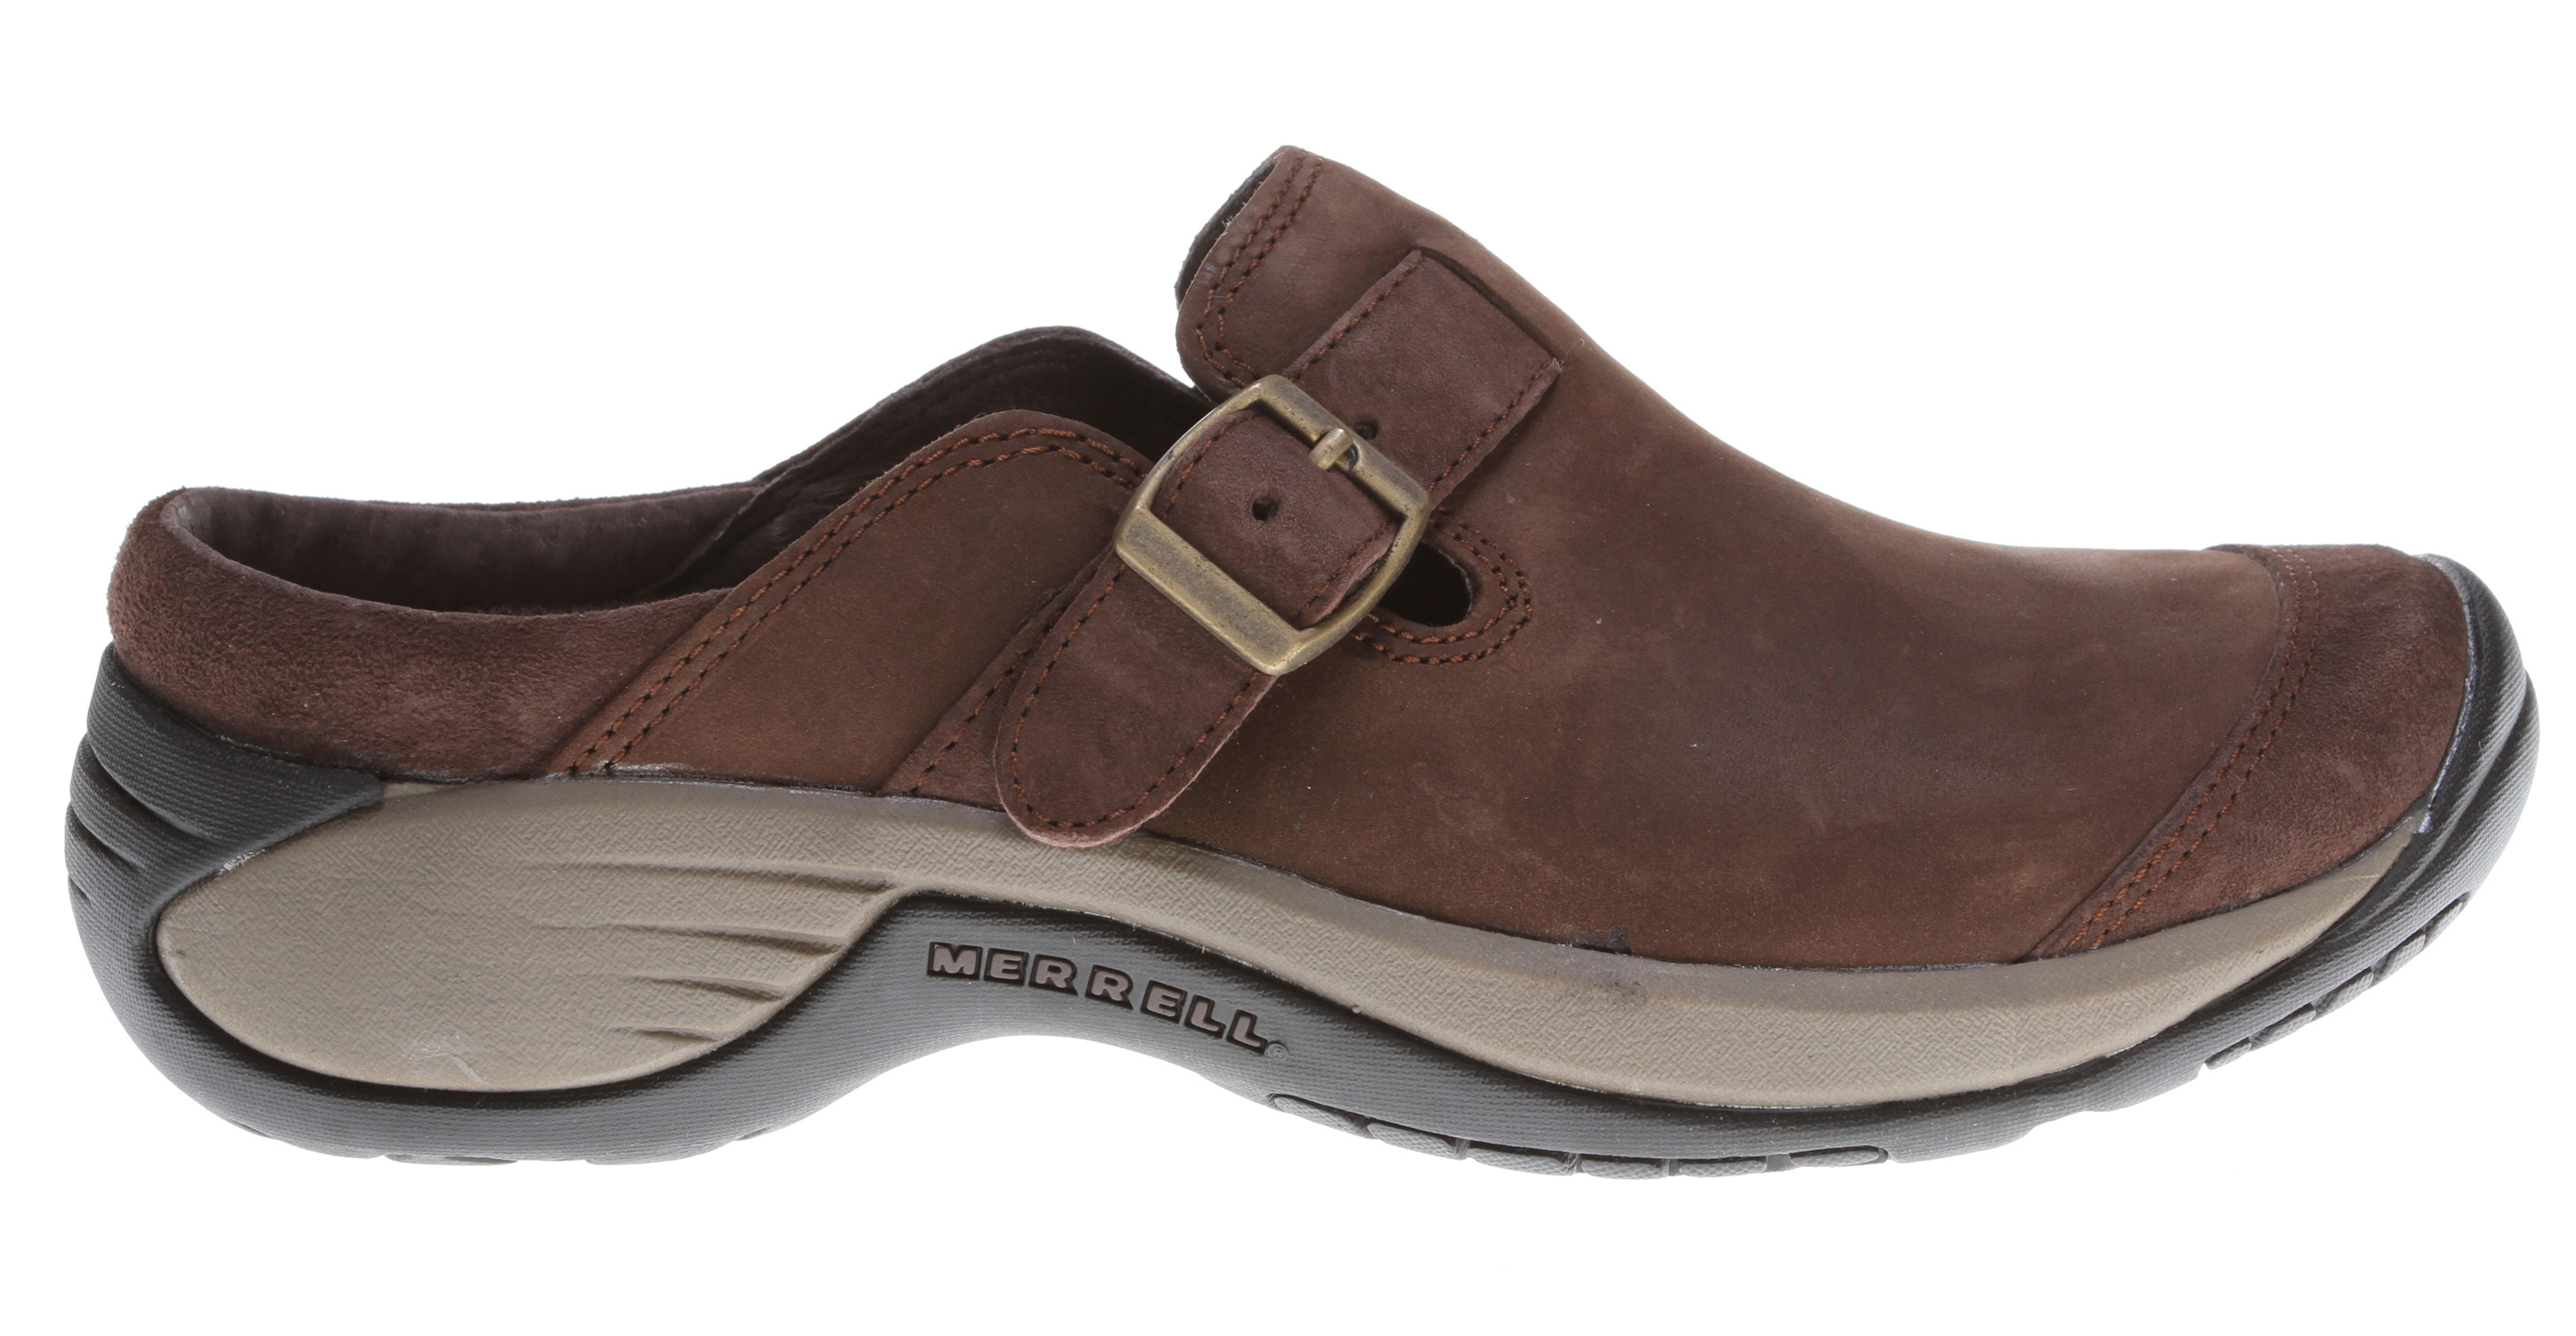 Fitness Kick up your heels in these feisty favorites! Running errands or running for coffee, this feminine leather slip-on ups your dress-up factor as an everyday wardrobe staple, with details like wool-wrapped footbeds for extra warmth anti-odor treated sheepskin linings, and women's-specific midsole cushioning ensure comfort.Key Features of the Merrell Encore Buckle Shoes: Strobel construction offers flexibility and comfort Nubuck and suede leather upper Breathable mesh lining treated with Aegis antimicrobial solution resists odor Ortholite anatomical footbed Molded nylon arch shank Merrell QForm Comfort EVA midsole provides women's specific stride-sequenced cushioning Merrell air cushion in the heel absorbs shock and adds stability Merrell Encore 2 Sole/Sticky Rubber Women's Weight: 1 lb 1 ozs - $80.00